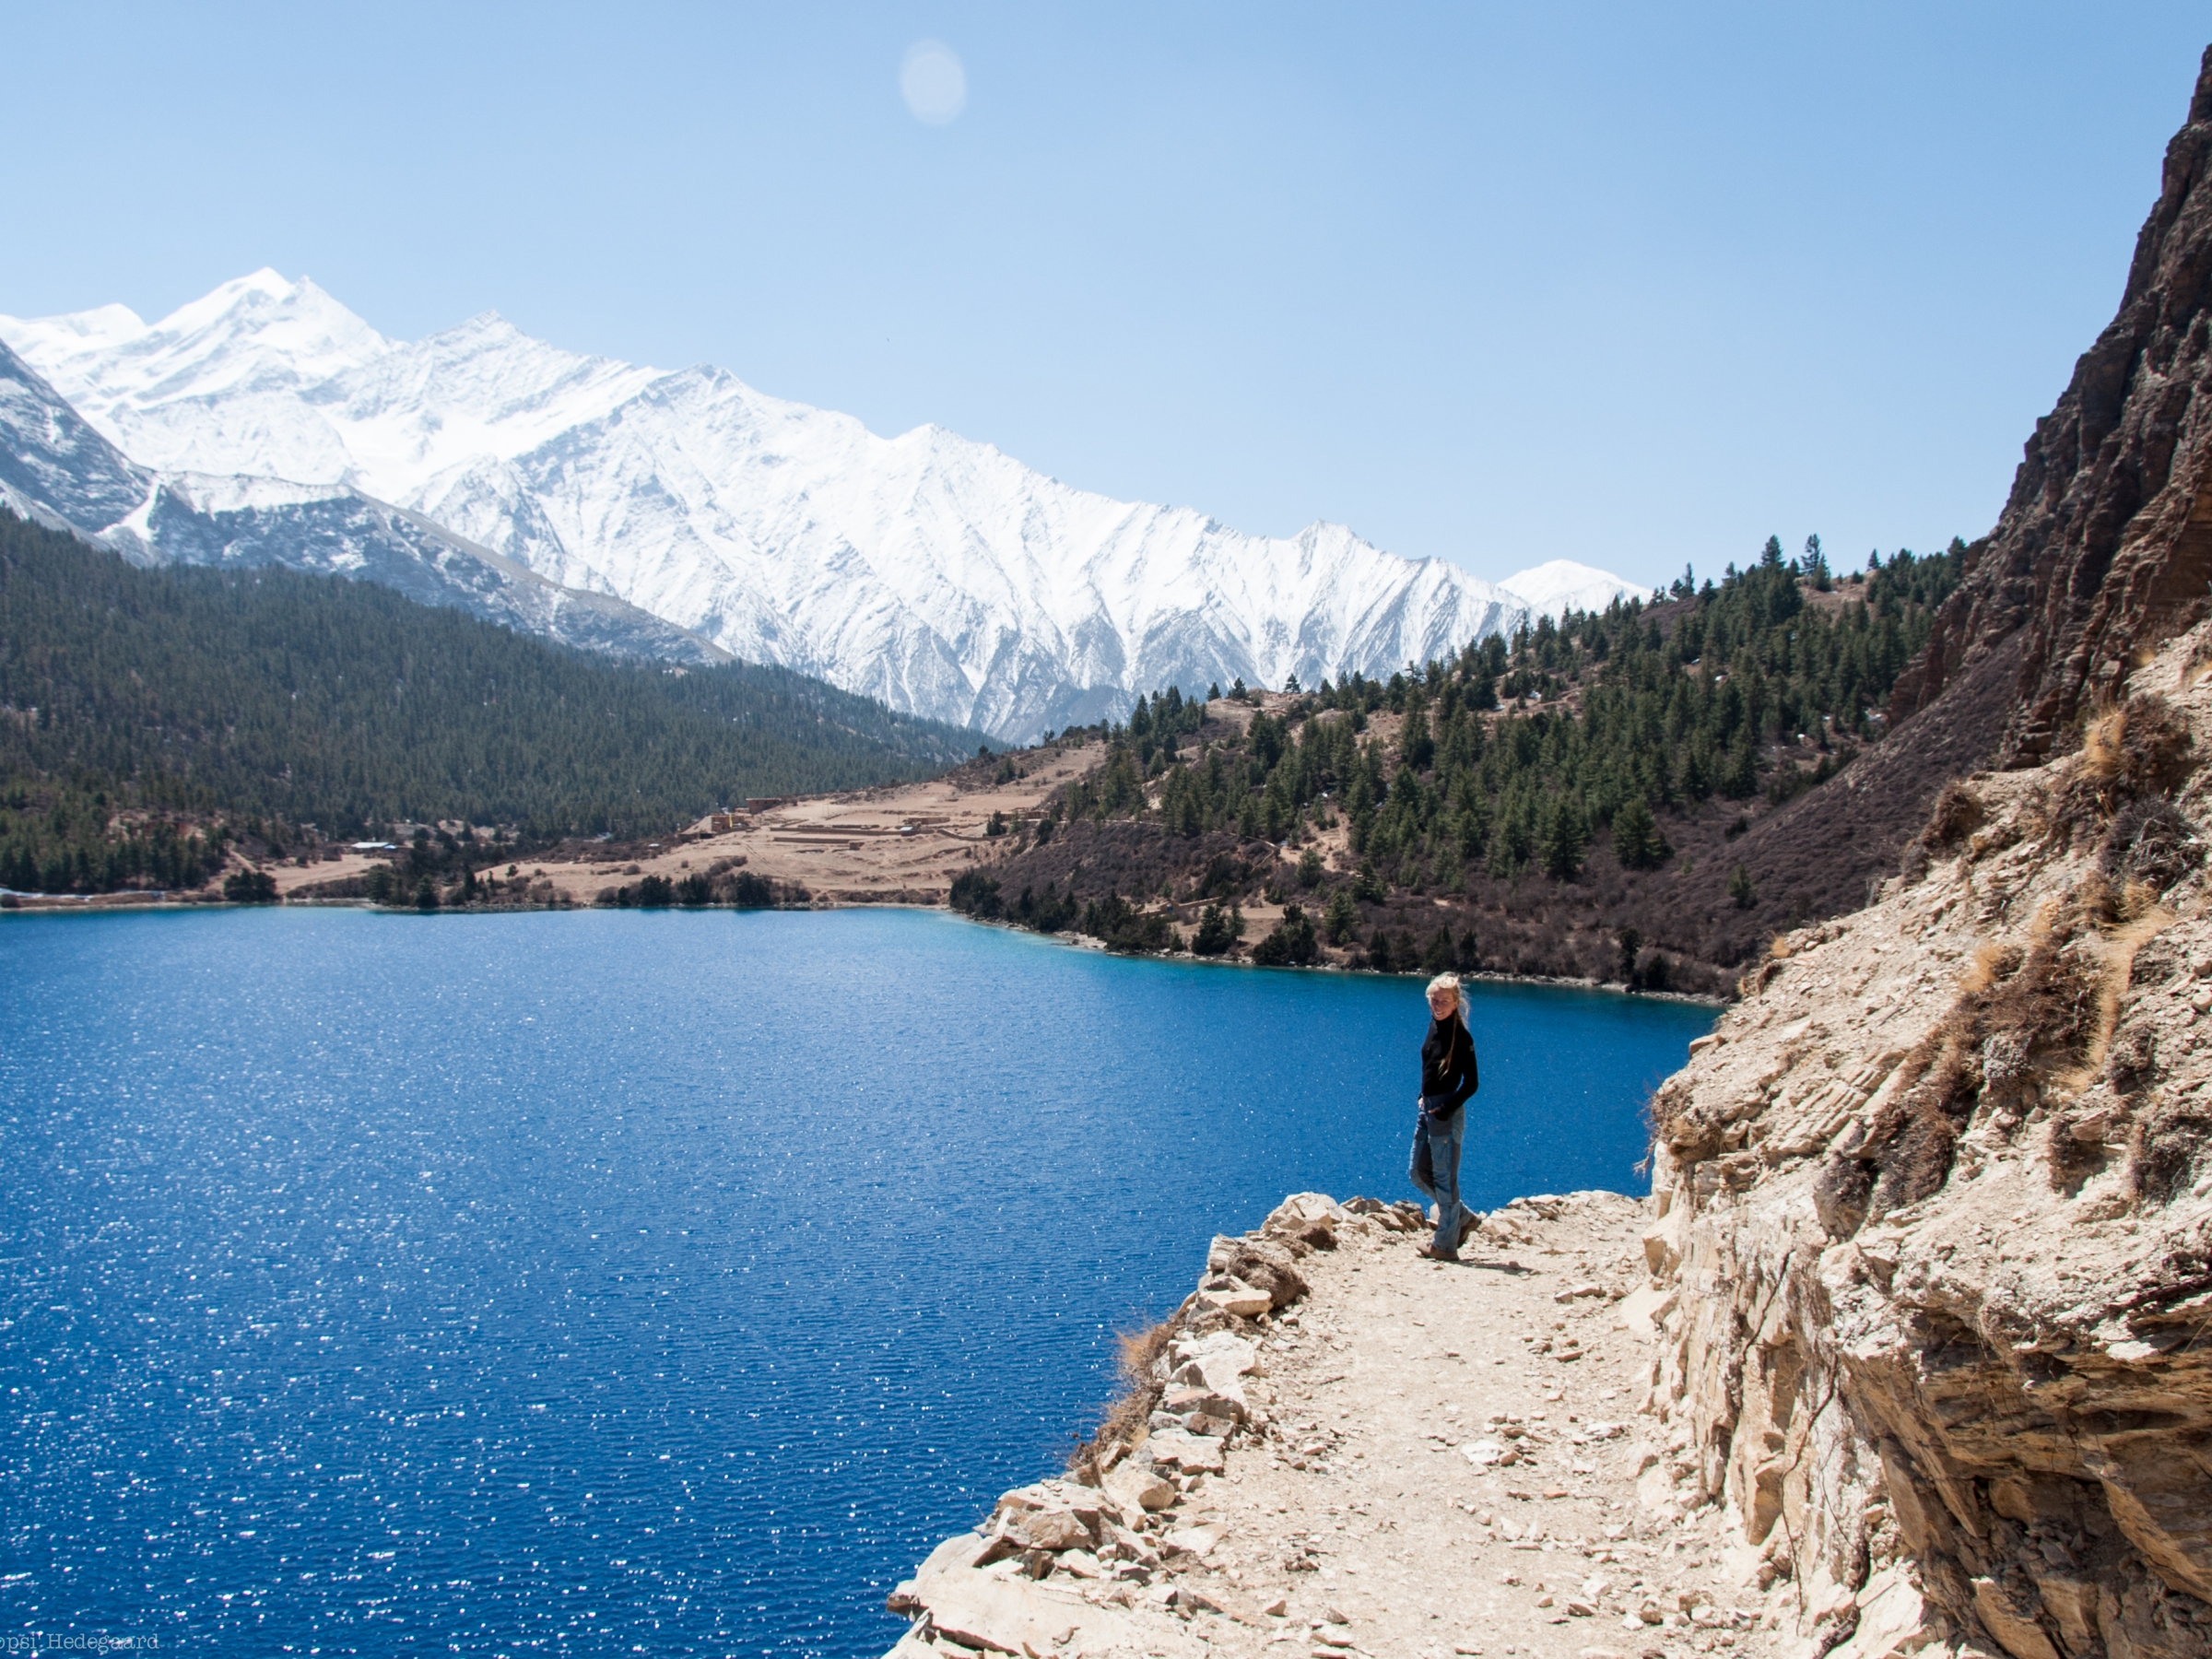 Taking a walk along the clean and cold high-altitude lake Dolpo.